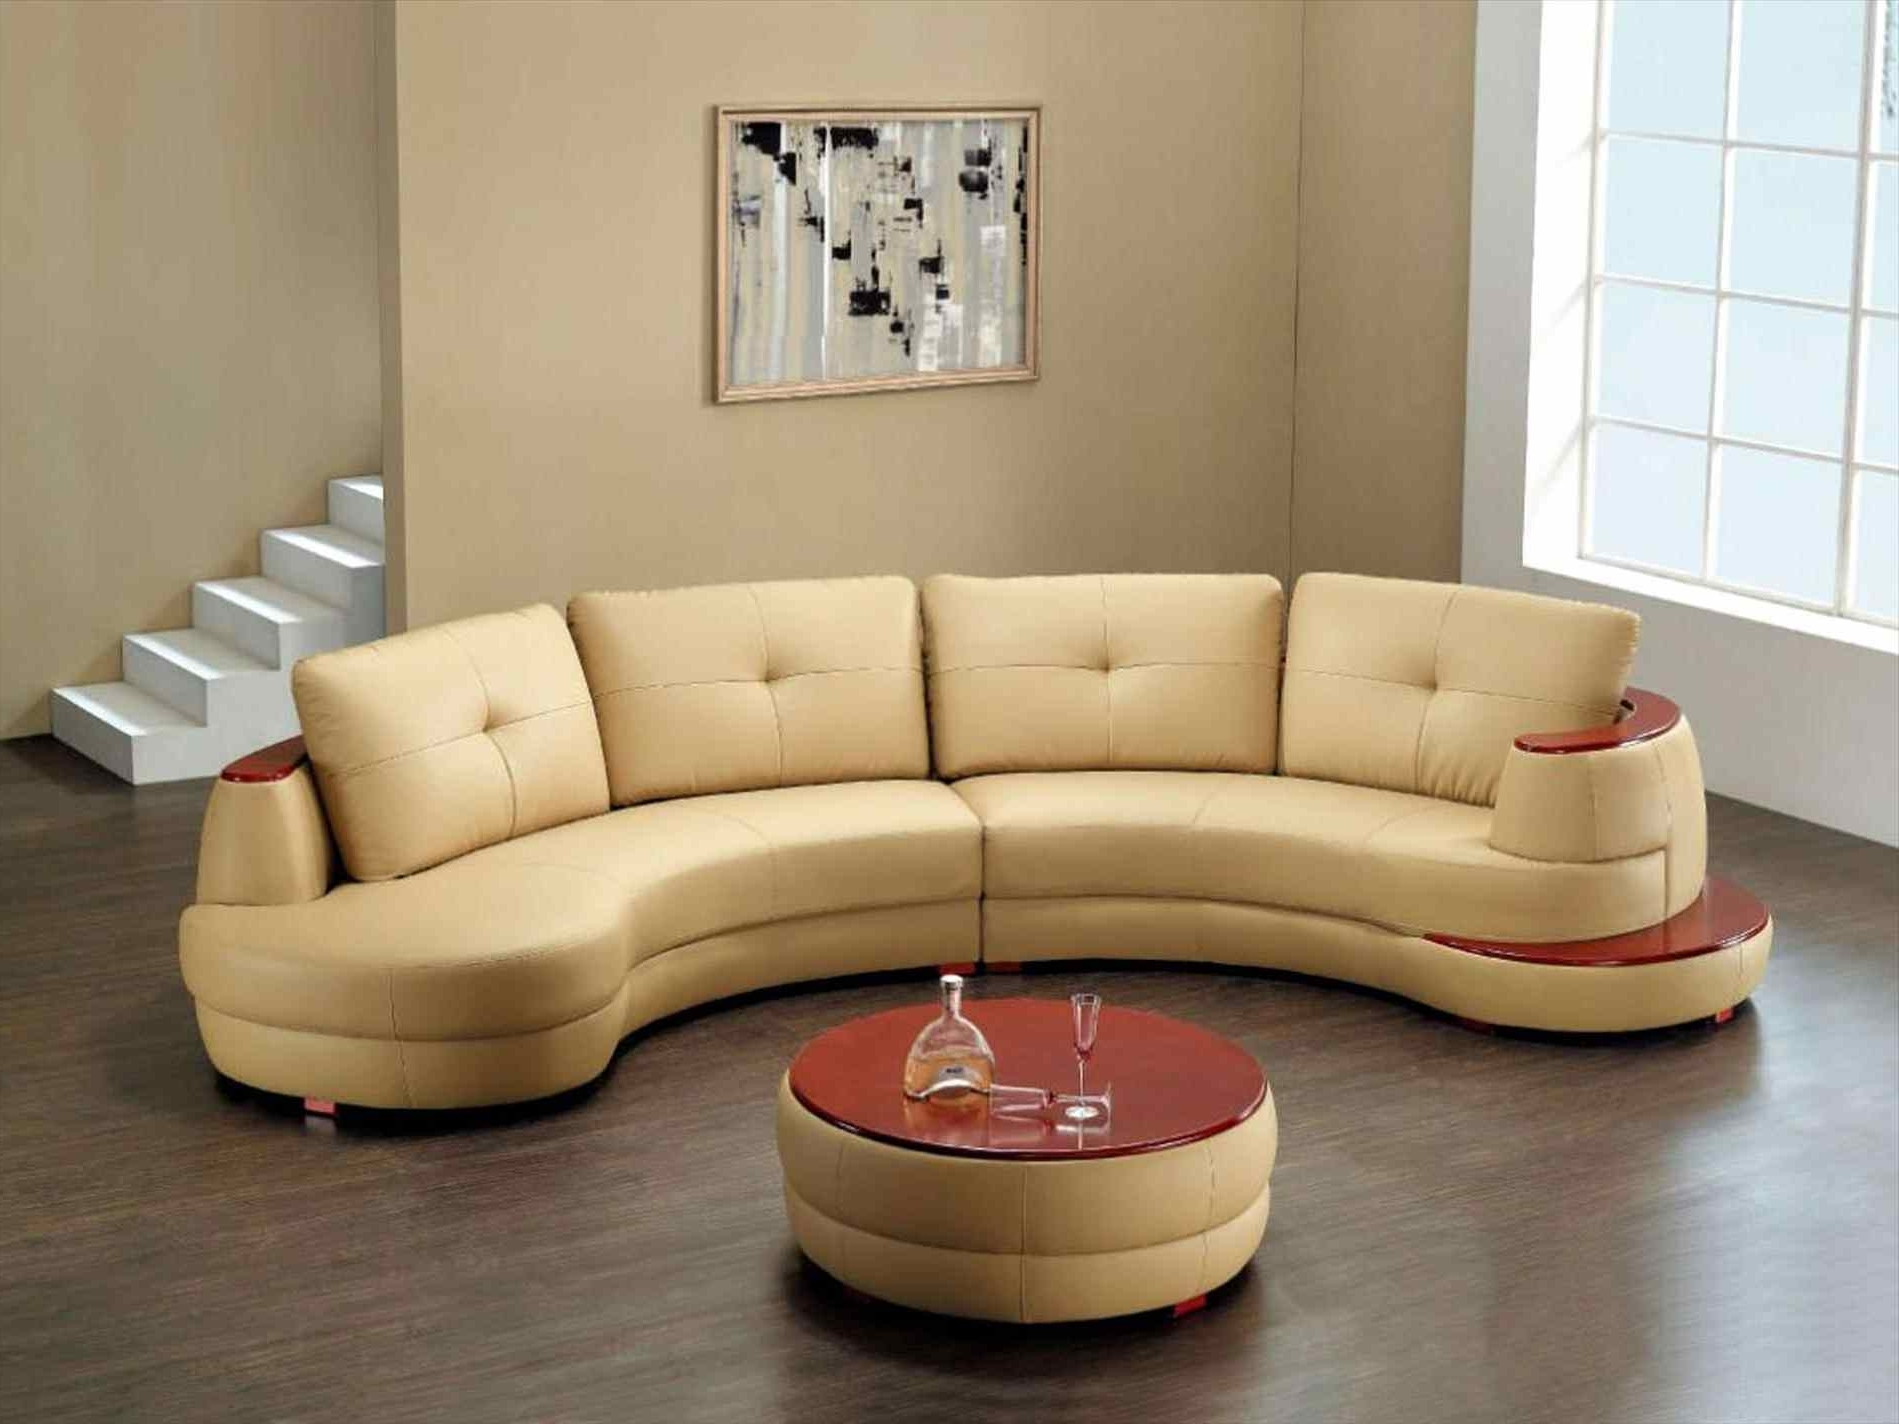 Preferred Customized Sofas Regarding Couch : Uae Call Settees Sofa Small Circle Couch Customized Sofas (View 3 of 15)